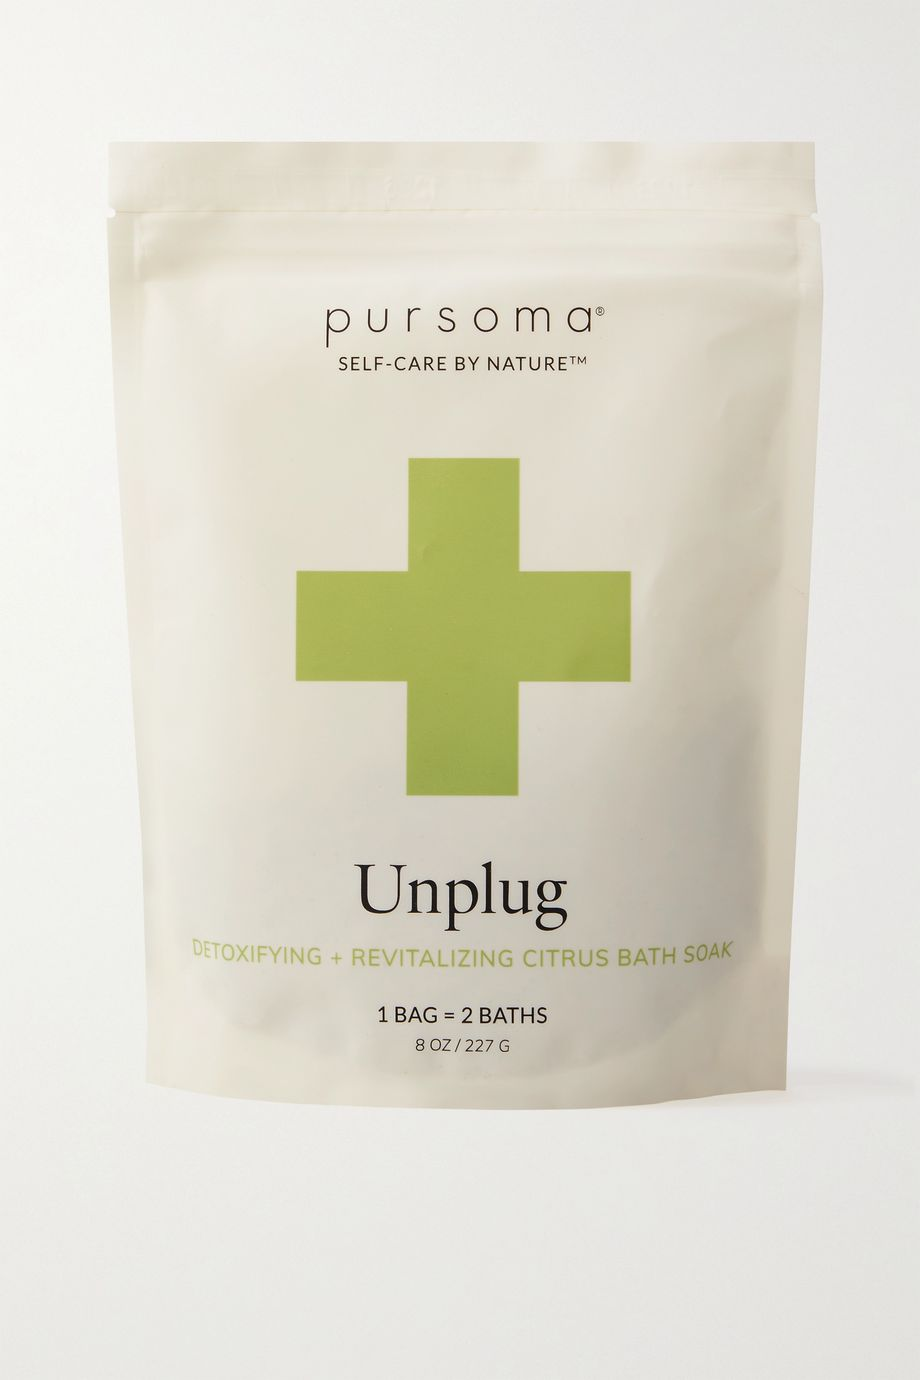 Pursoma Unplug Ritual Detoxifying + Revitalizing Lemon Verbena Bath Soak, 227g